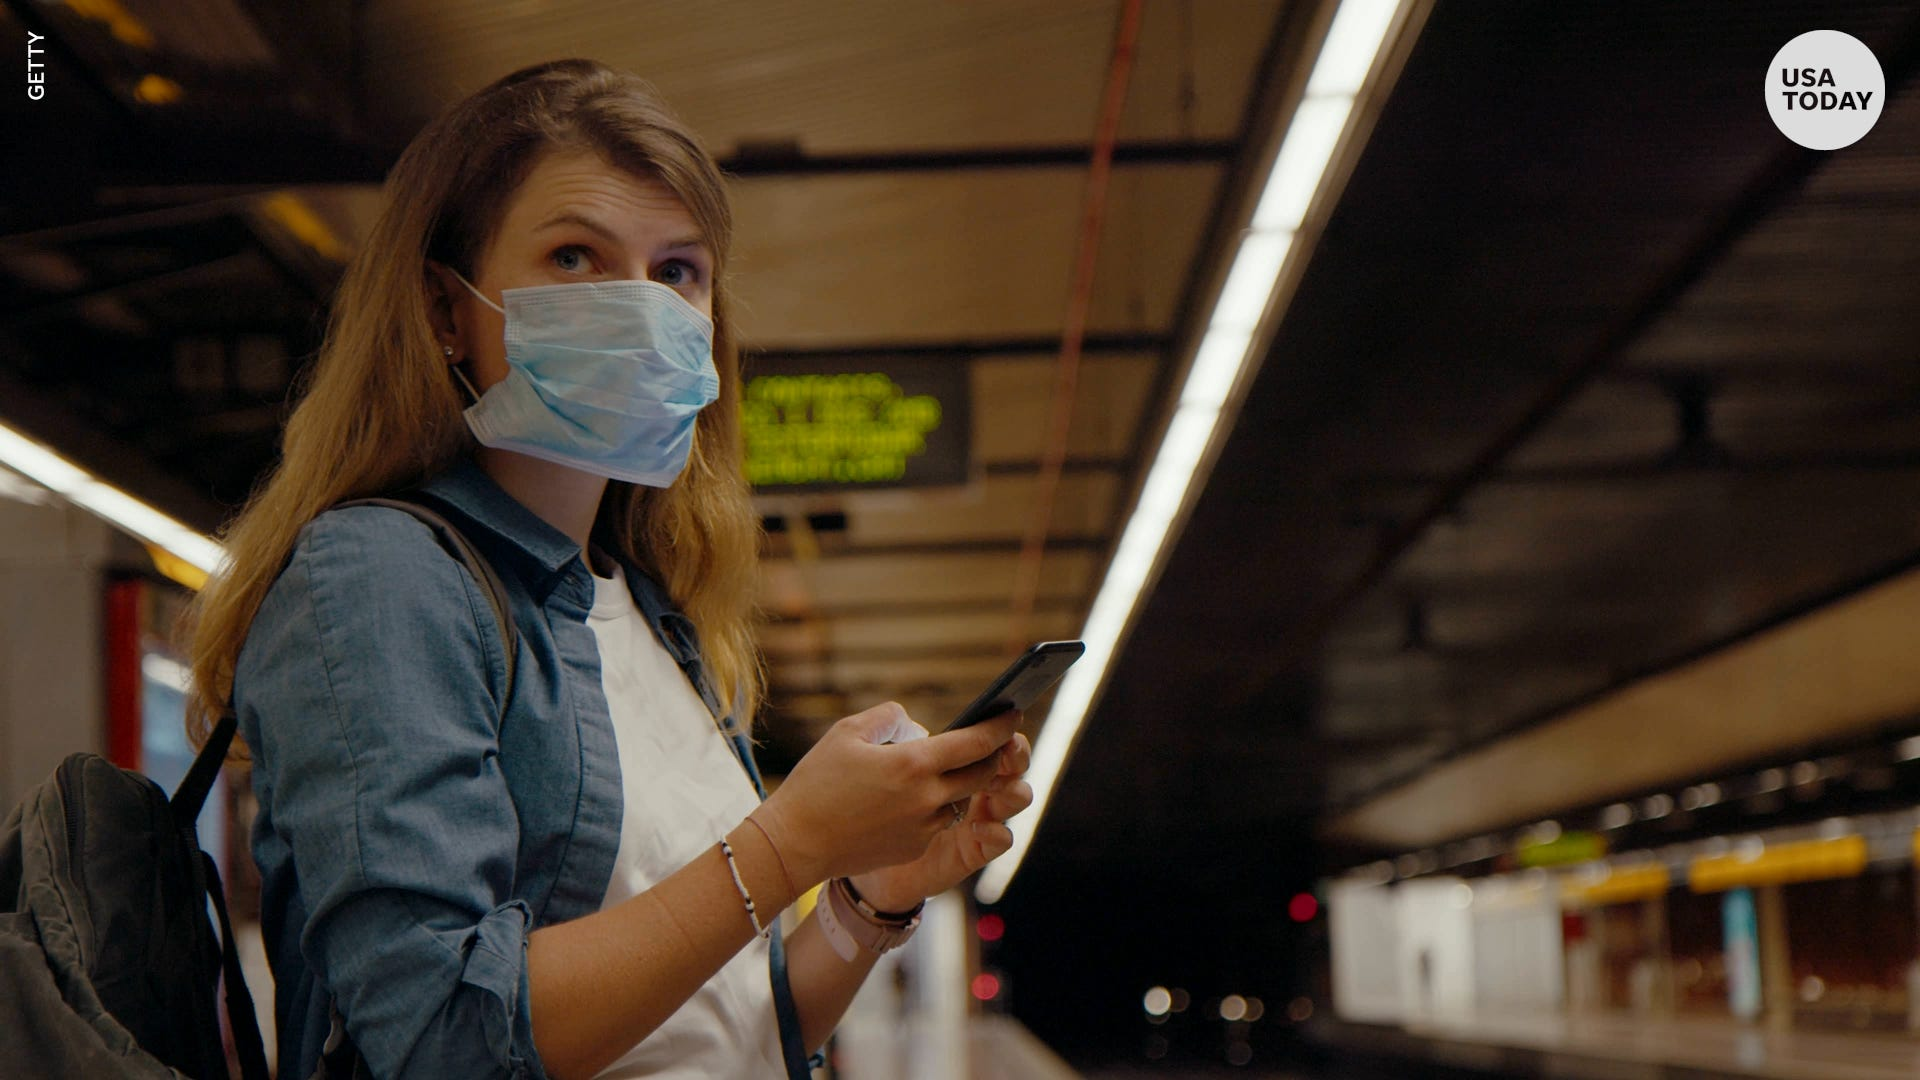 CDC issues new guidance, advises travelers on public transportation to wear a mask